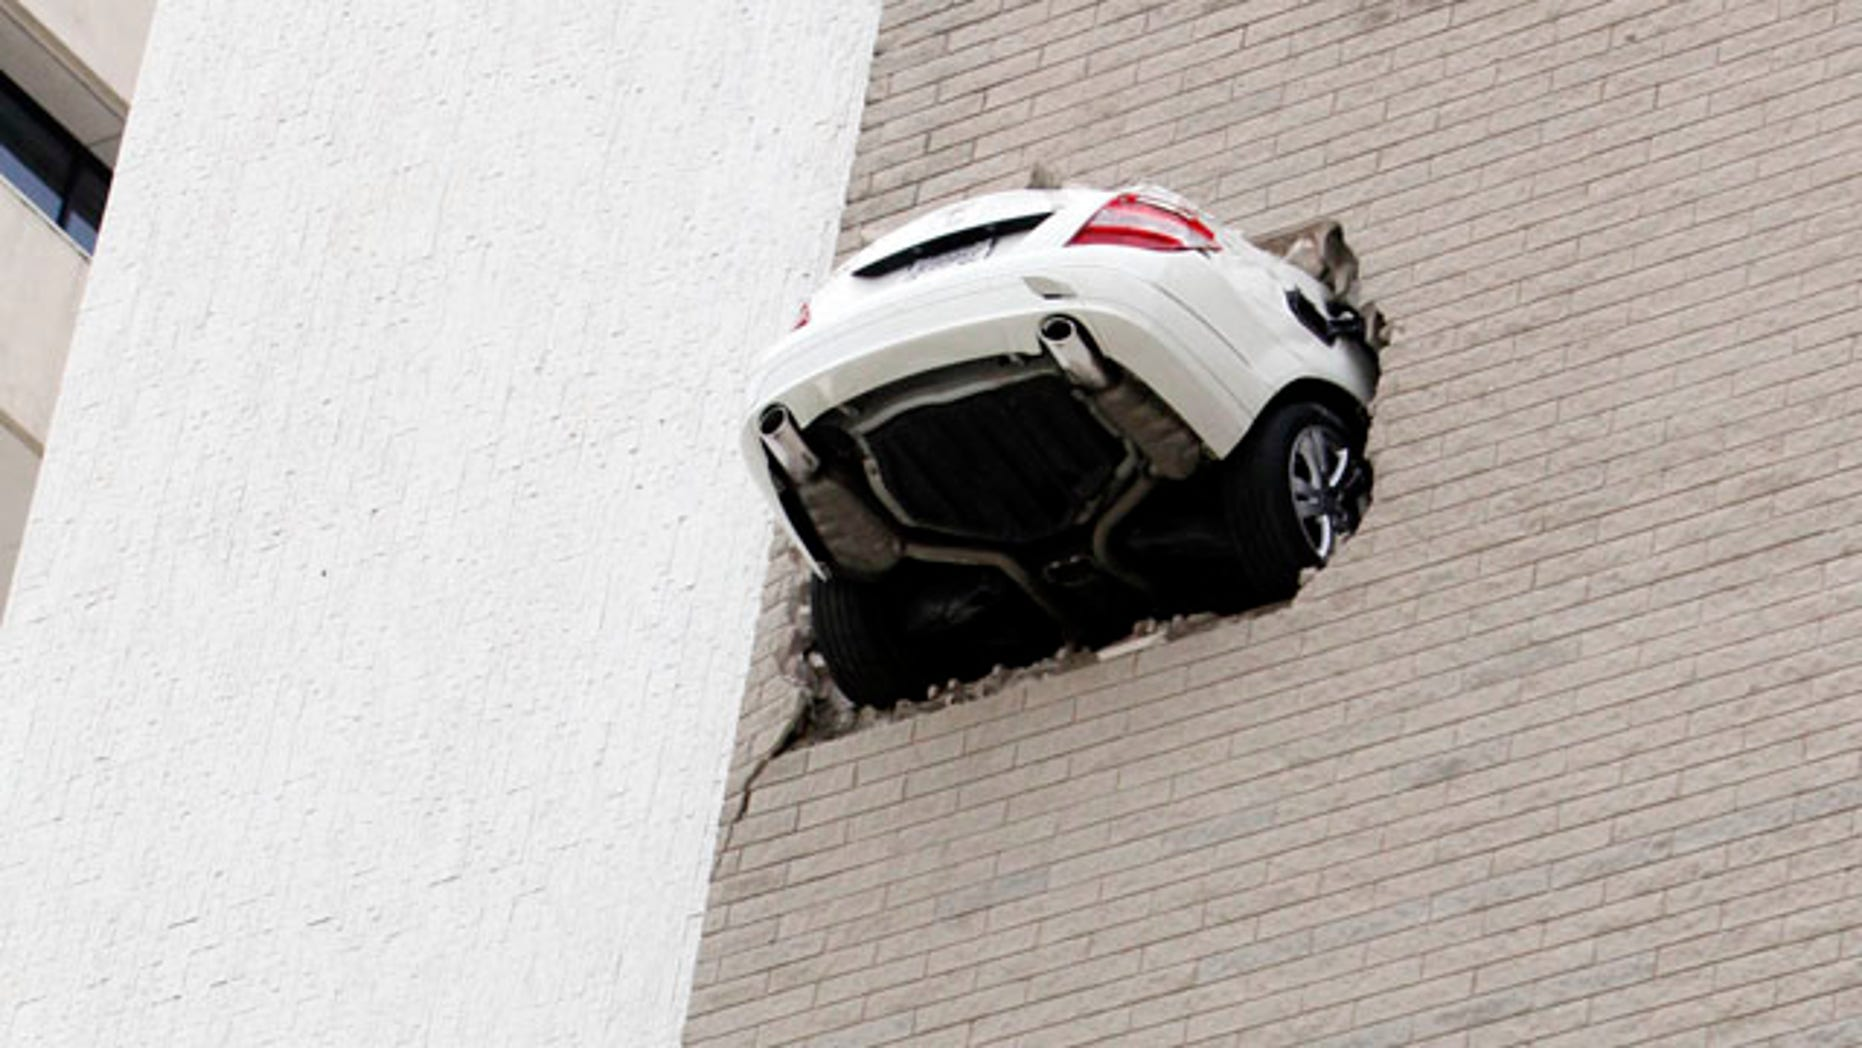 April 28: No injuries were reported when the car seen here went through the 6th floor wall of a parking garage in Tulsa, Okla.